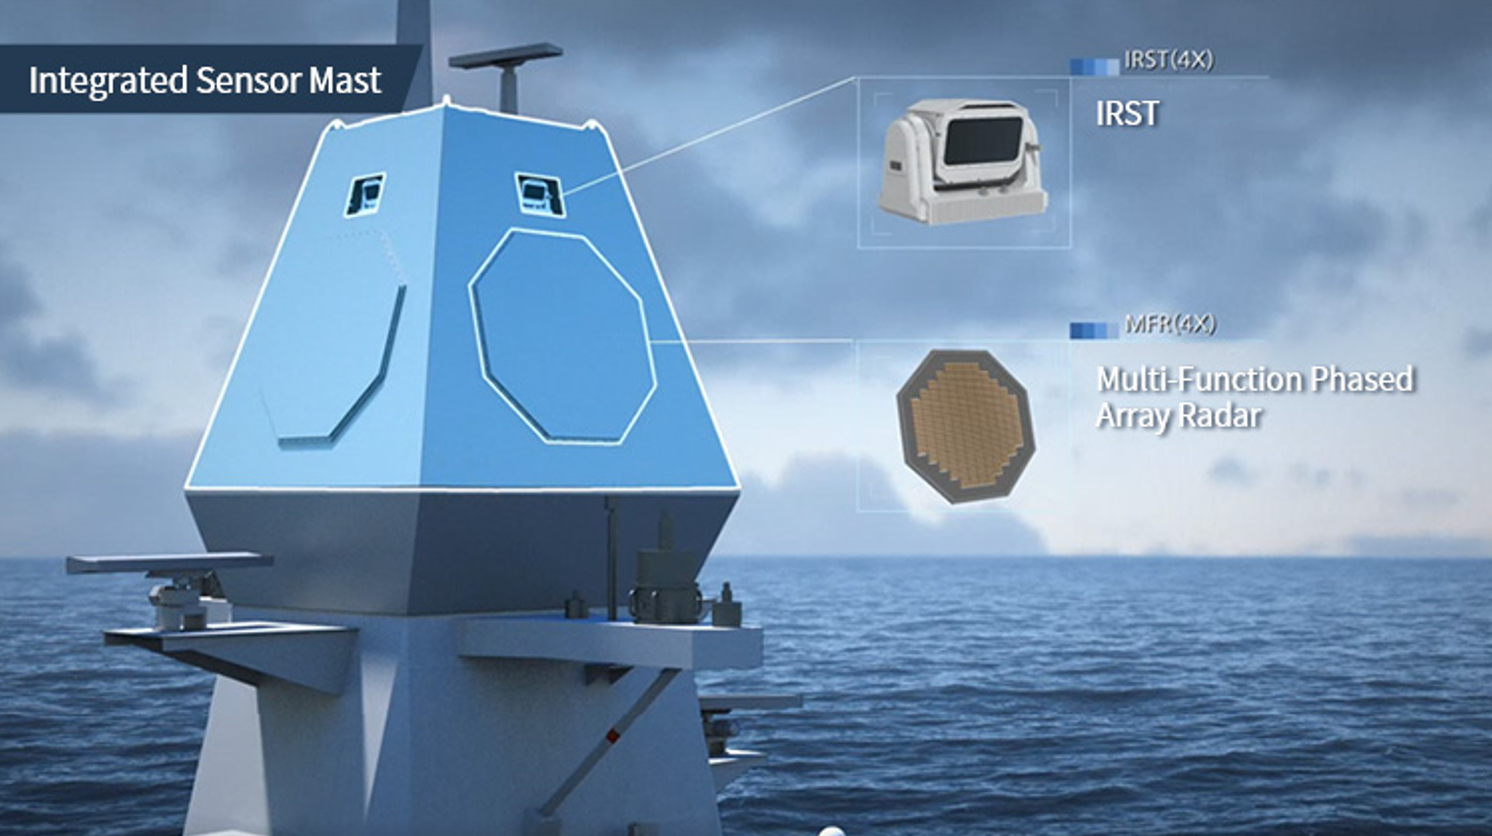 Hanwha's new integrated mast (I-Mast) will be on the Republic of Korea Navy's (RoKN) new KDDX/ KDX-IV destroyer.